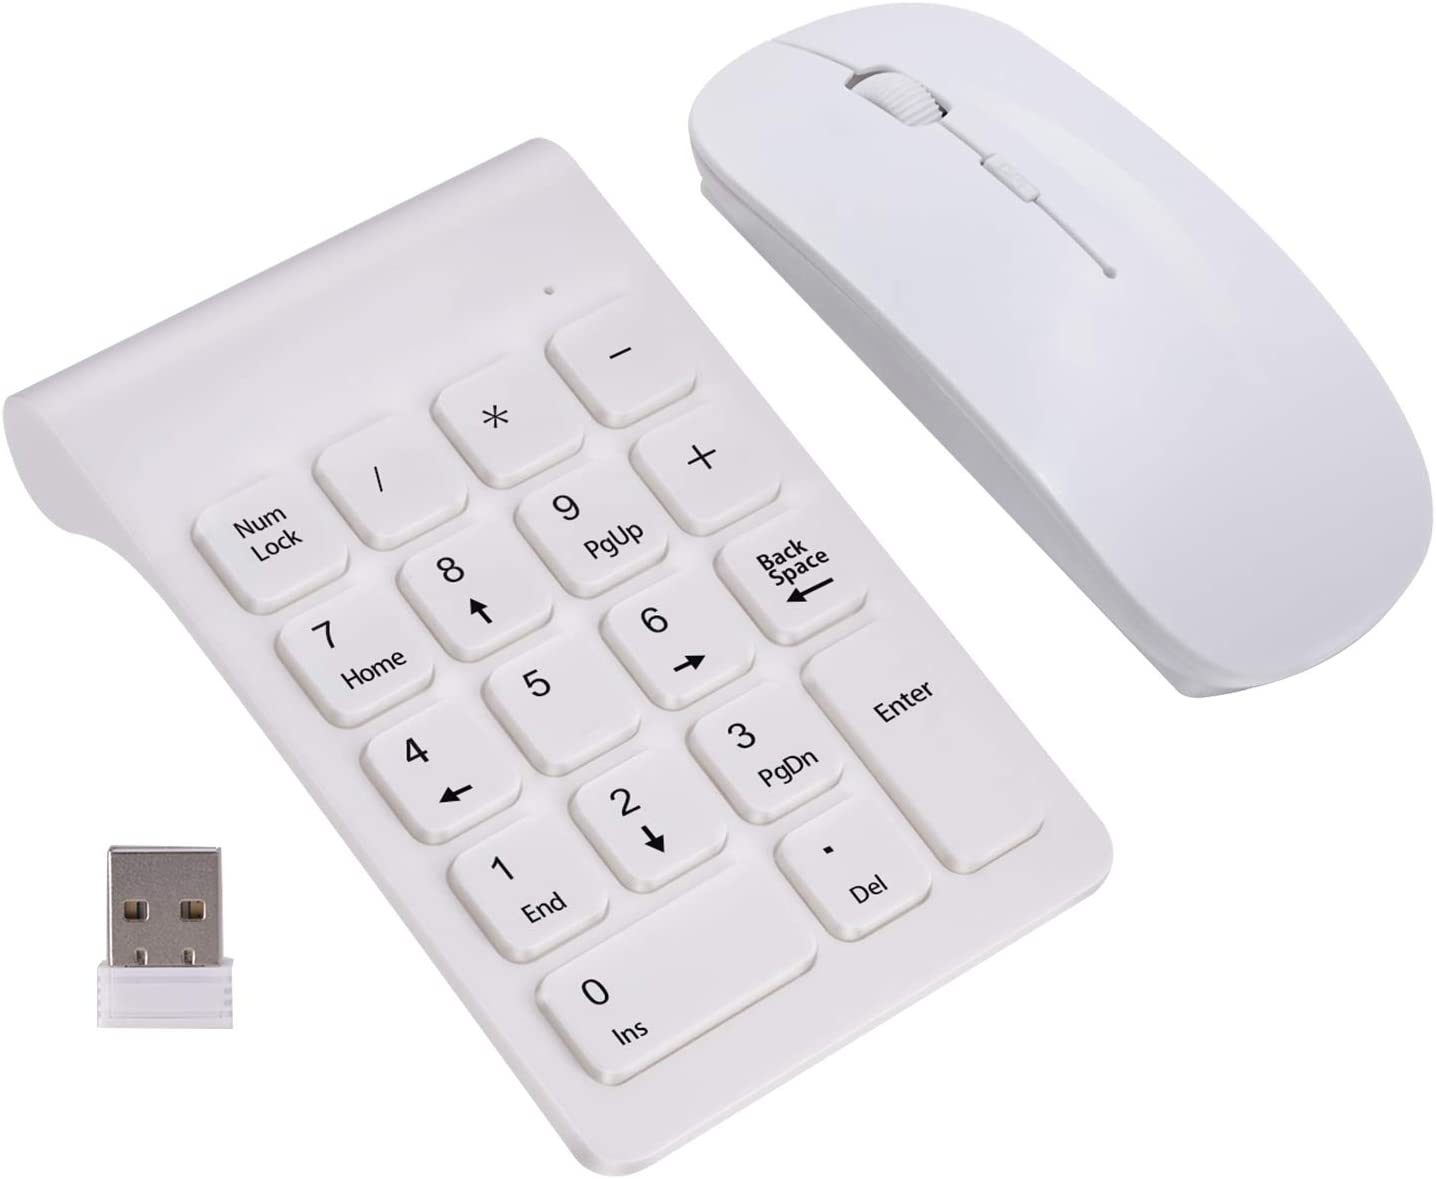 Wireless Numeric Keypad, TRELC Mini 2.4G 18 Keys Number Pad, Portable Silent Financial Accounting Numeric Keypad Keyboard Extensions with Wireless Mouse for Laptop, PC, Desktop, Notebook (White)